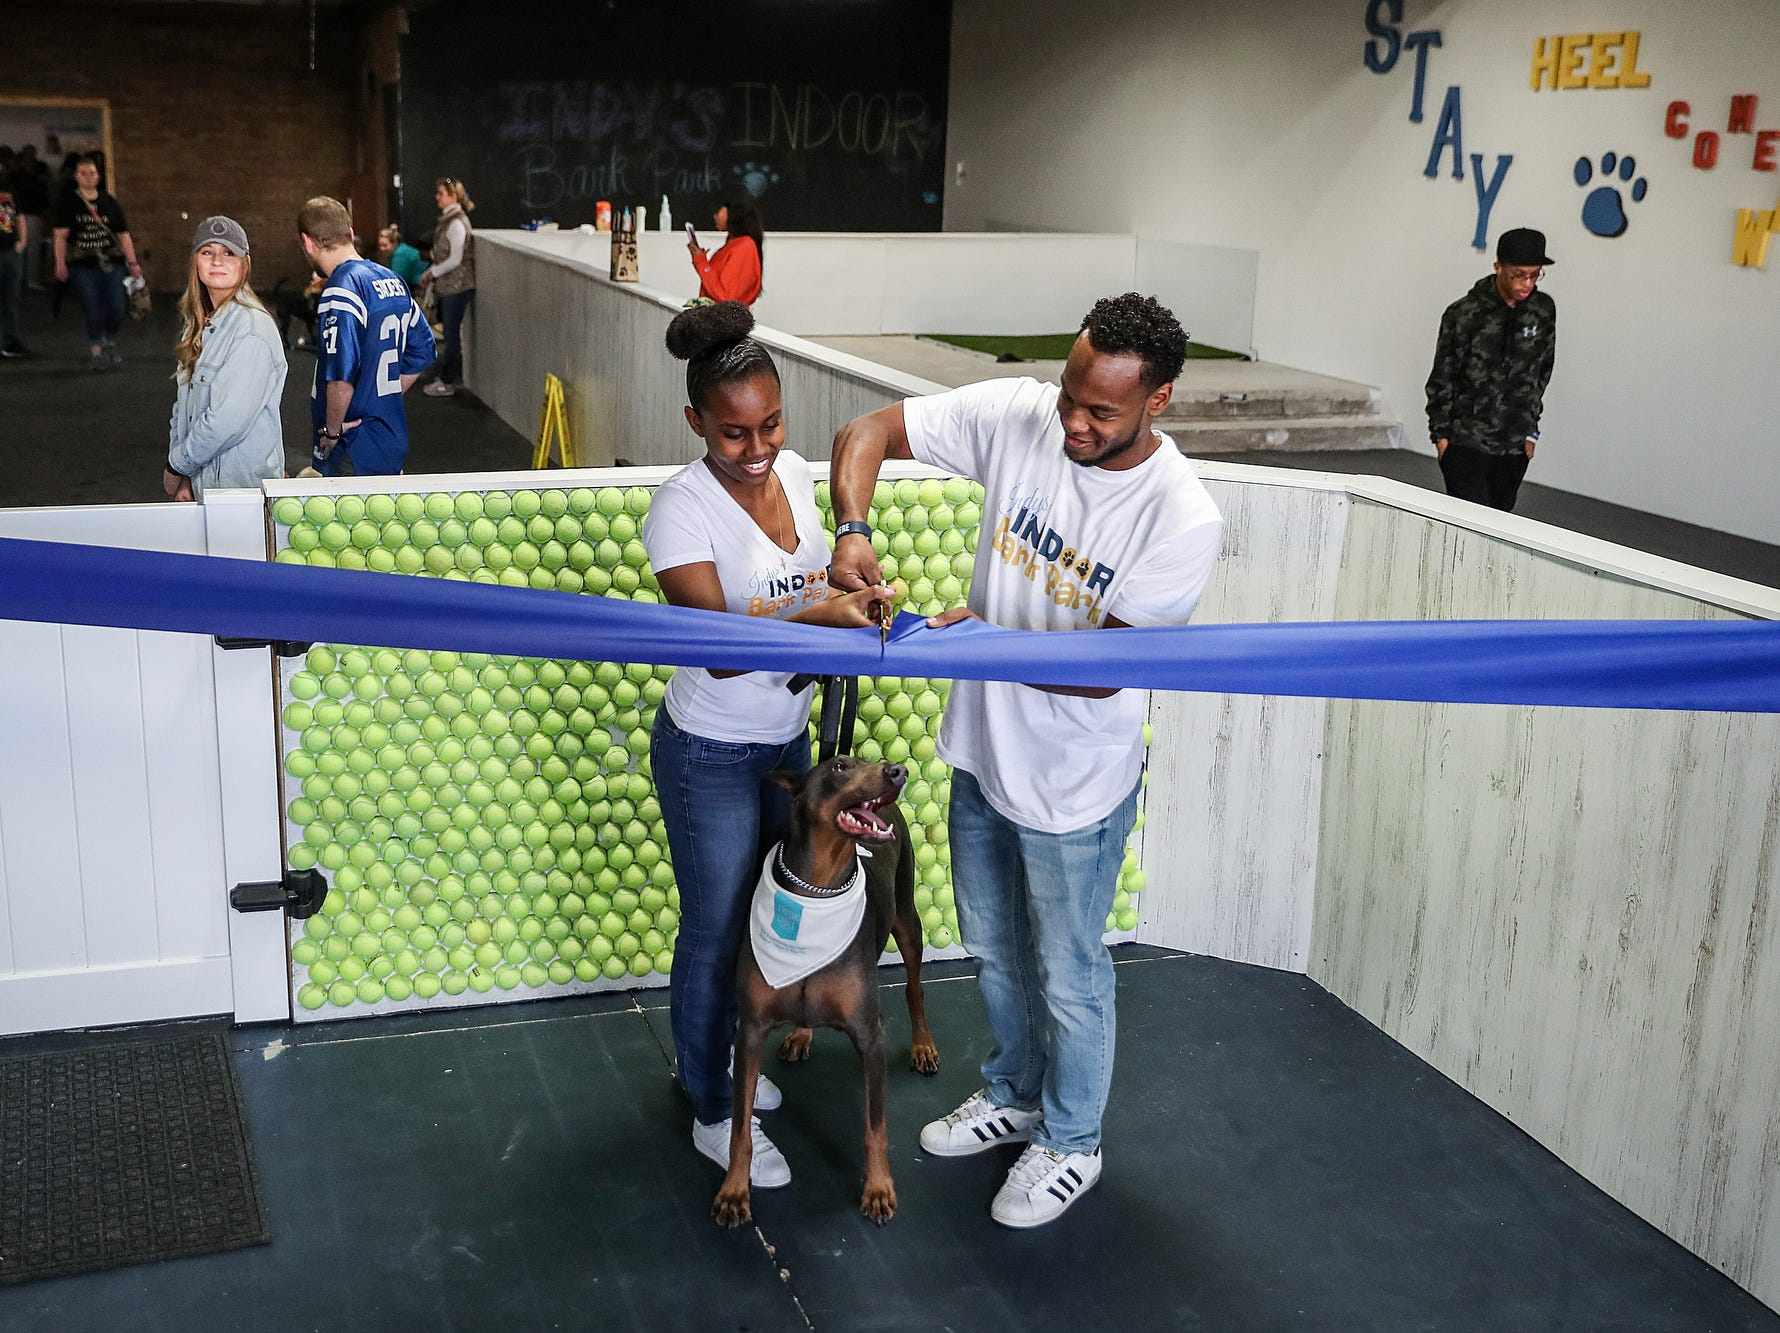 From left, Danielle and Darius Smith and their dog King cut a ribbon marking grand opening of Indy's Indoor Bark Park in Indianapolis, Saturday, Jan, 5, 2019. The large indoor space offers owners a place to exercise their dogs regardless of the weather. Membership options include single-day, multi-day and annual passes.